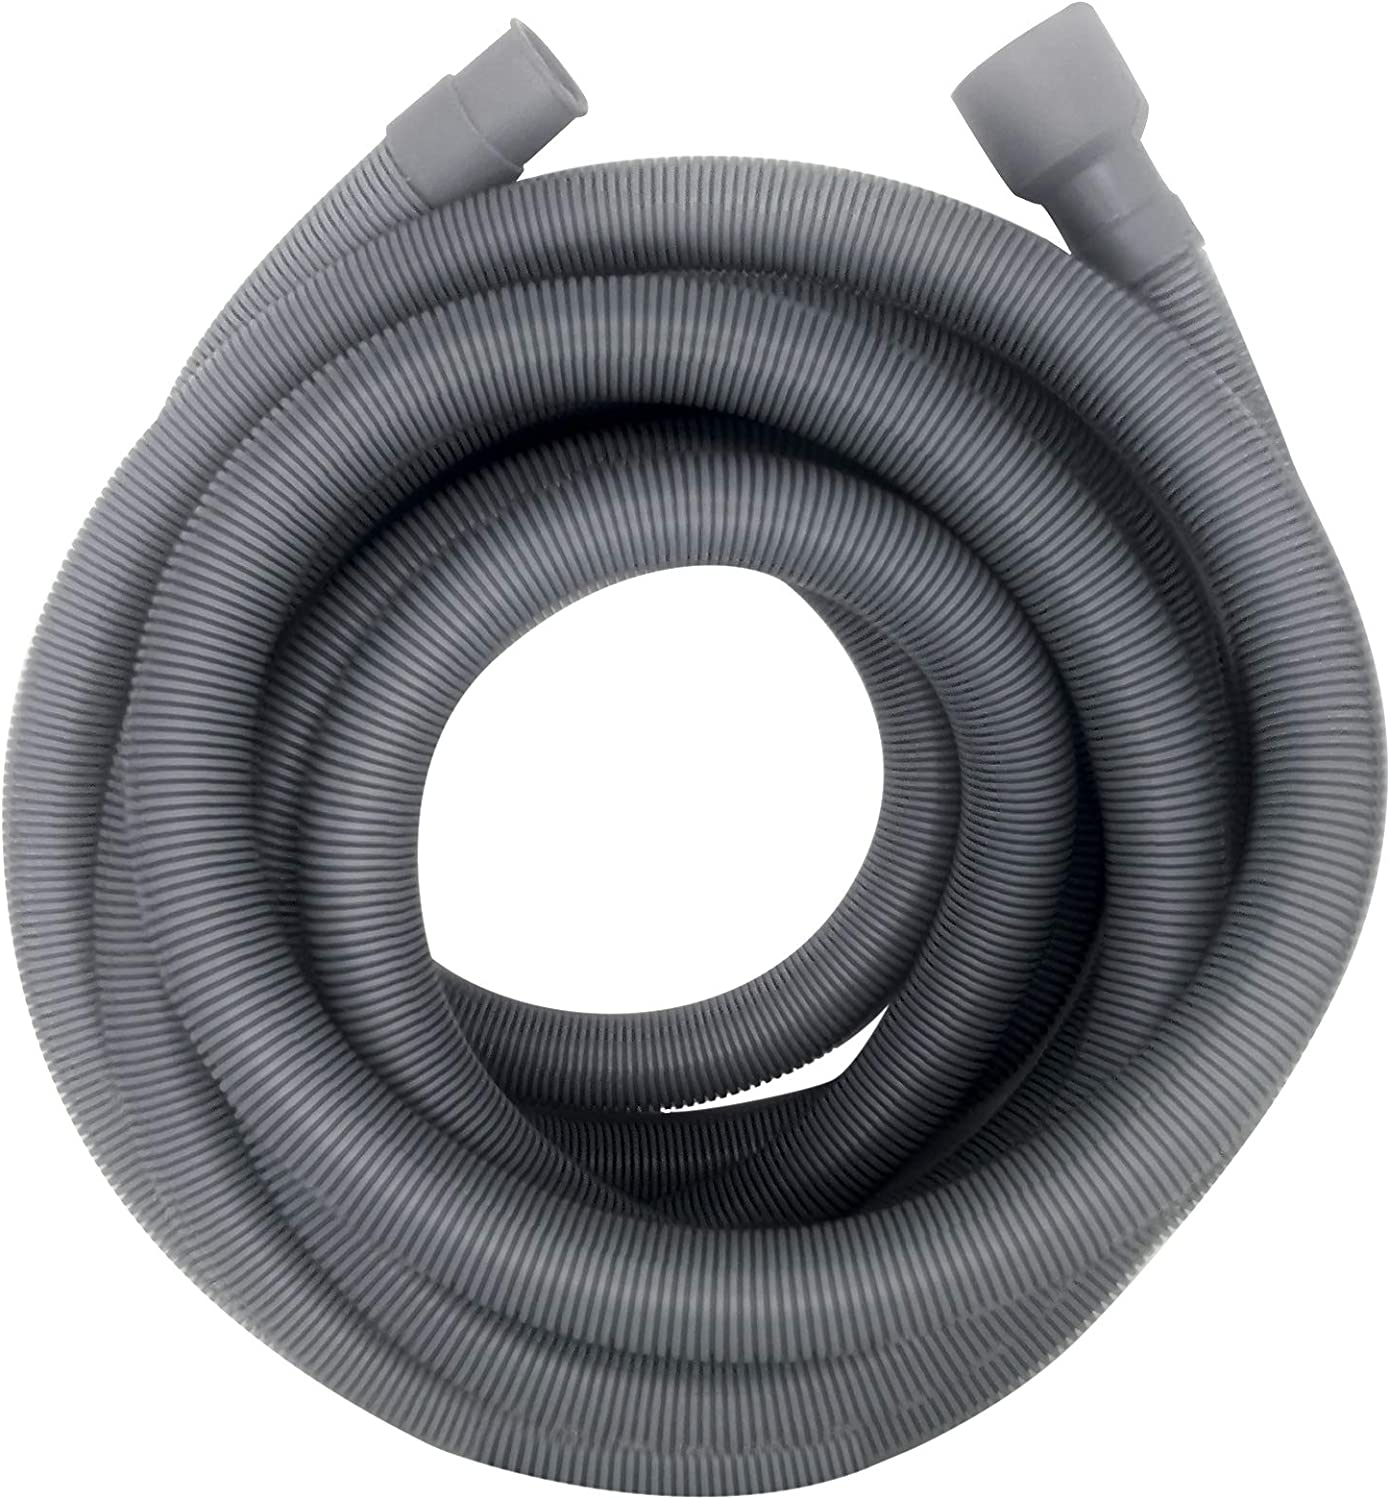 Servineart 16.4 ft Universal Washing Machine Drain Hose Flexible Dishwasher Drain Hose Extension Kits Corrugated Washer Discharge Hose with 1 Extension Adapter and 2 Hose Clamps